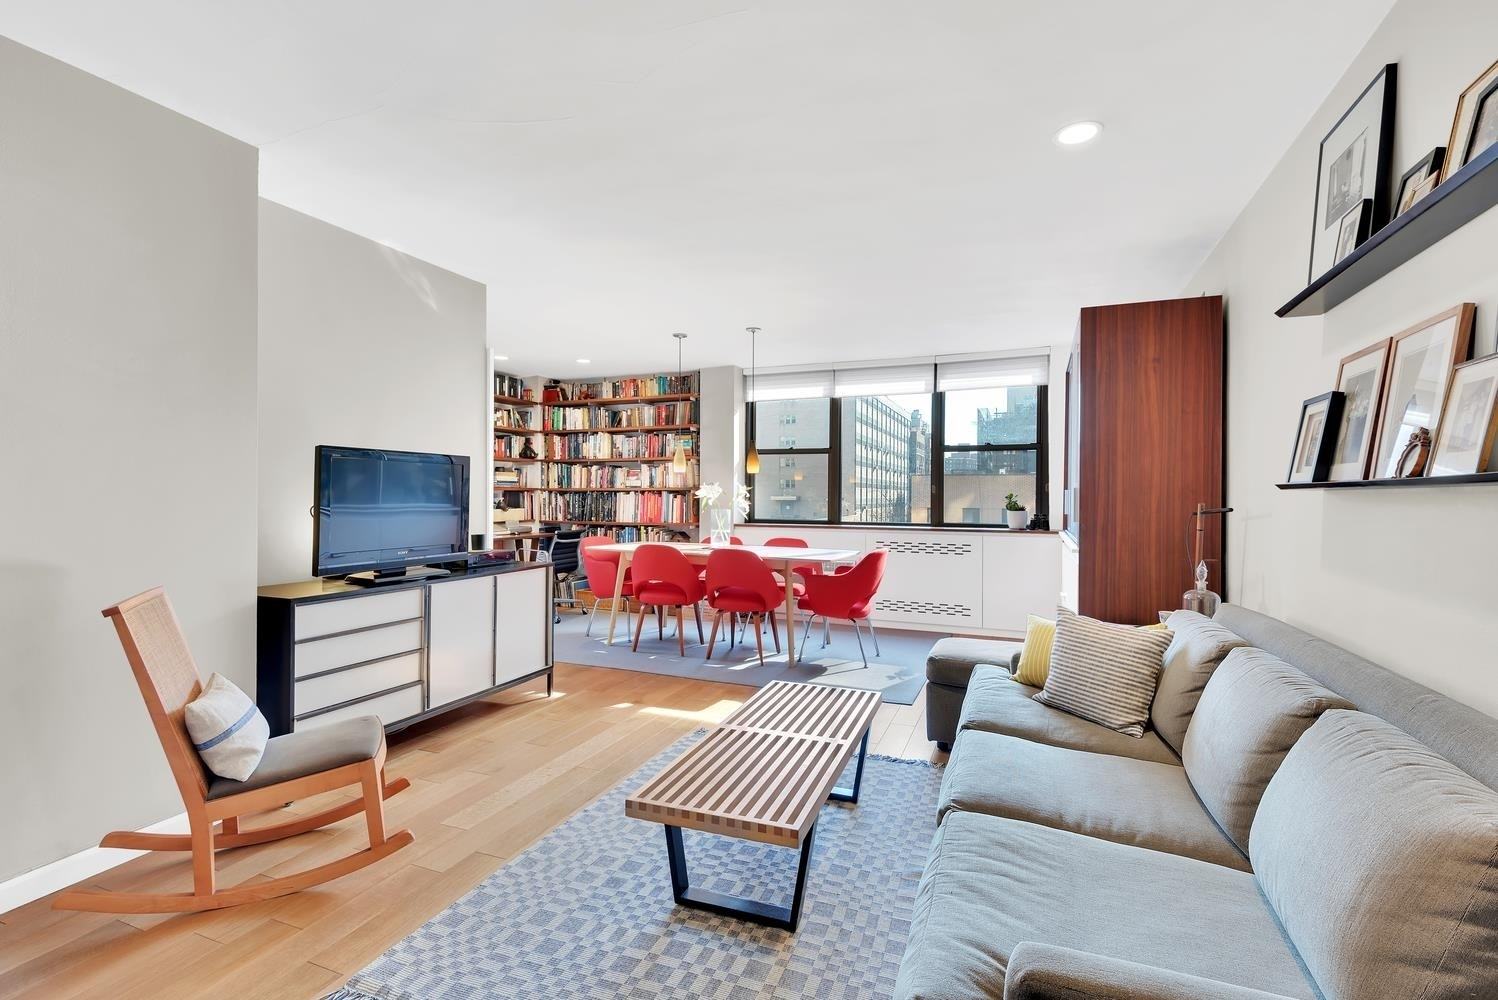 Property at 32 Gramercy Park South, 5M New York